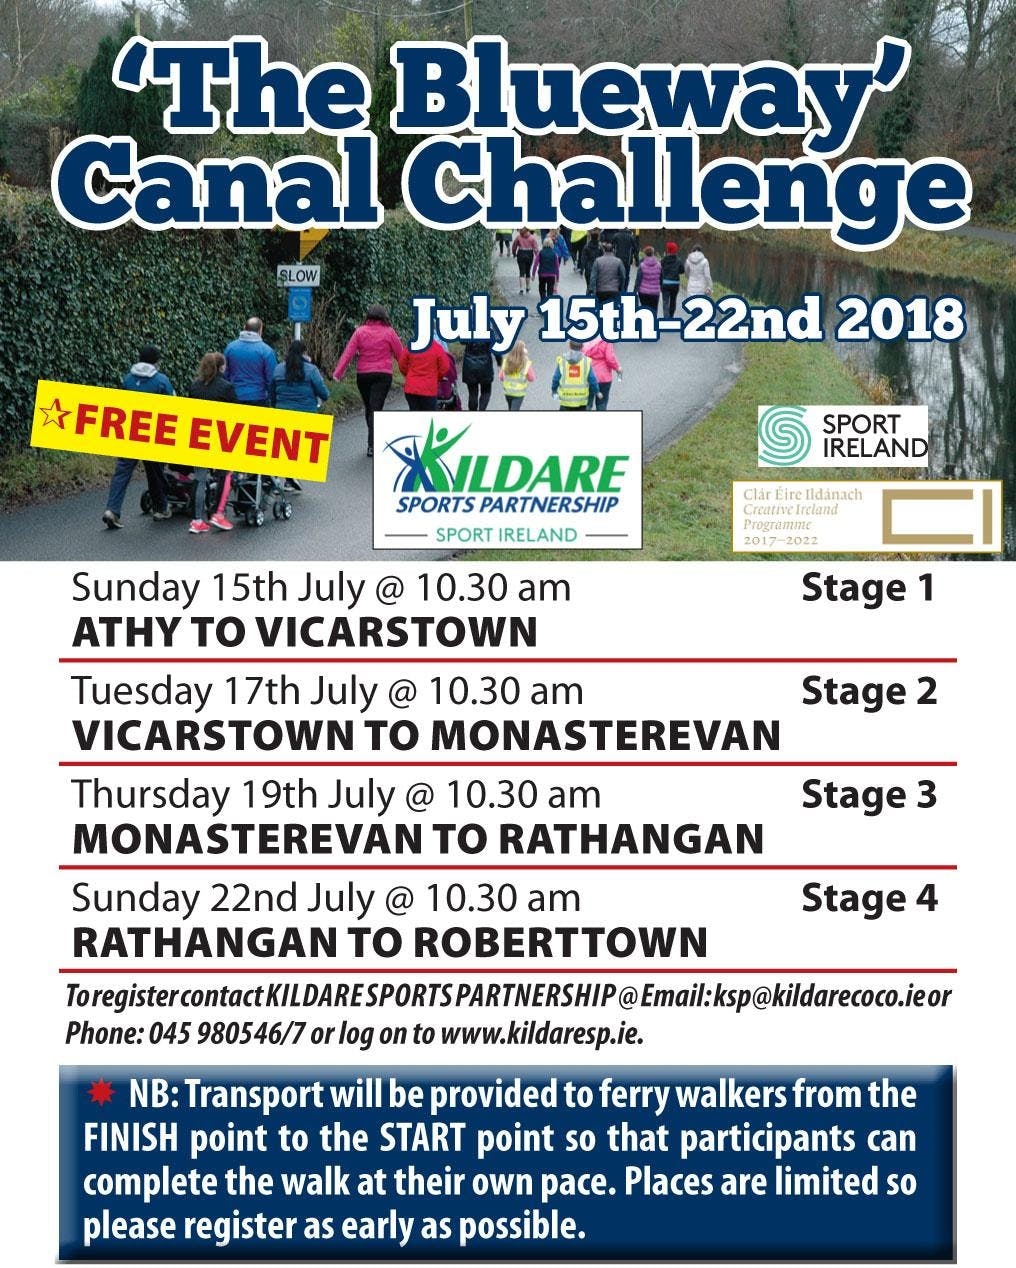 KSP 'Blueway Canal Challenge' - Stage 2 - Vicarstown to Monasterevan